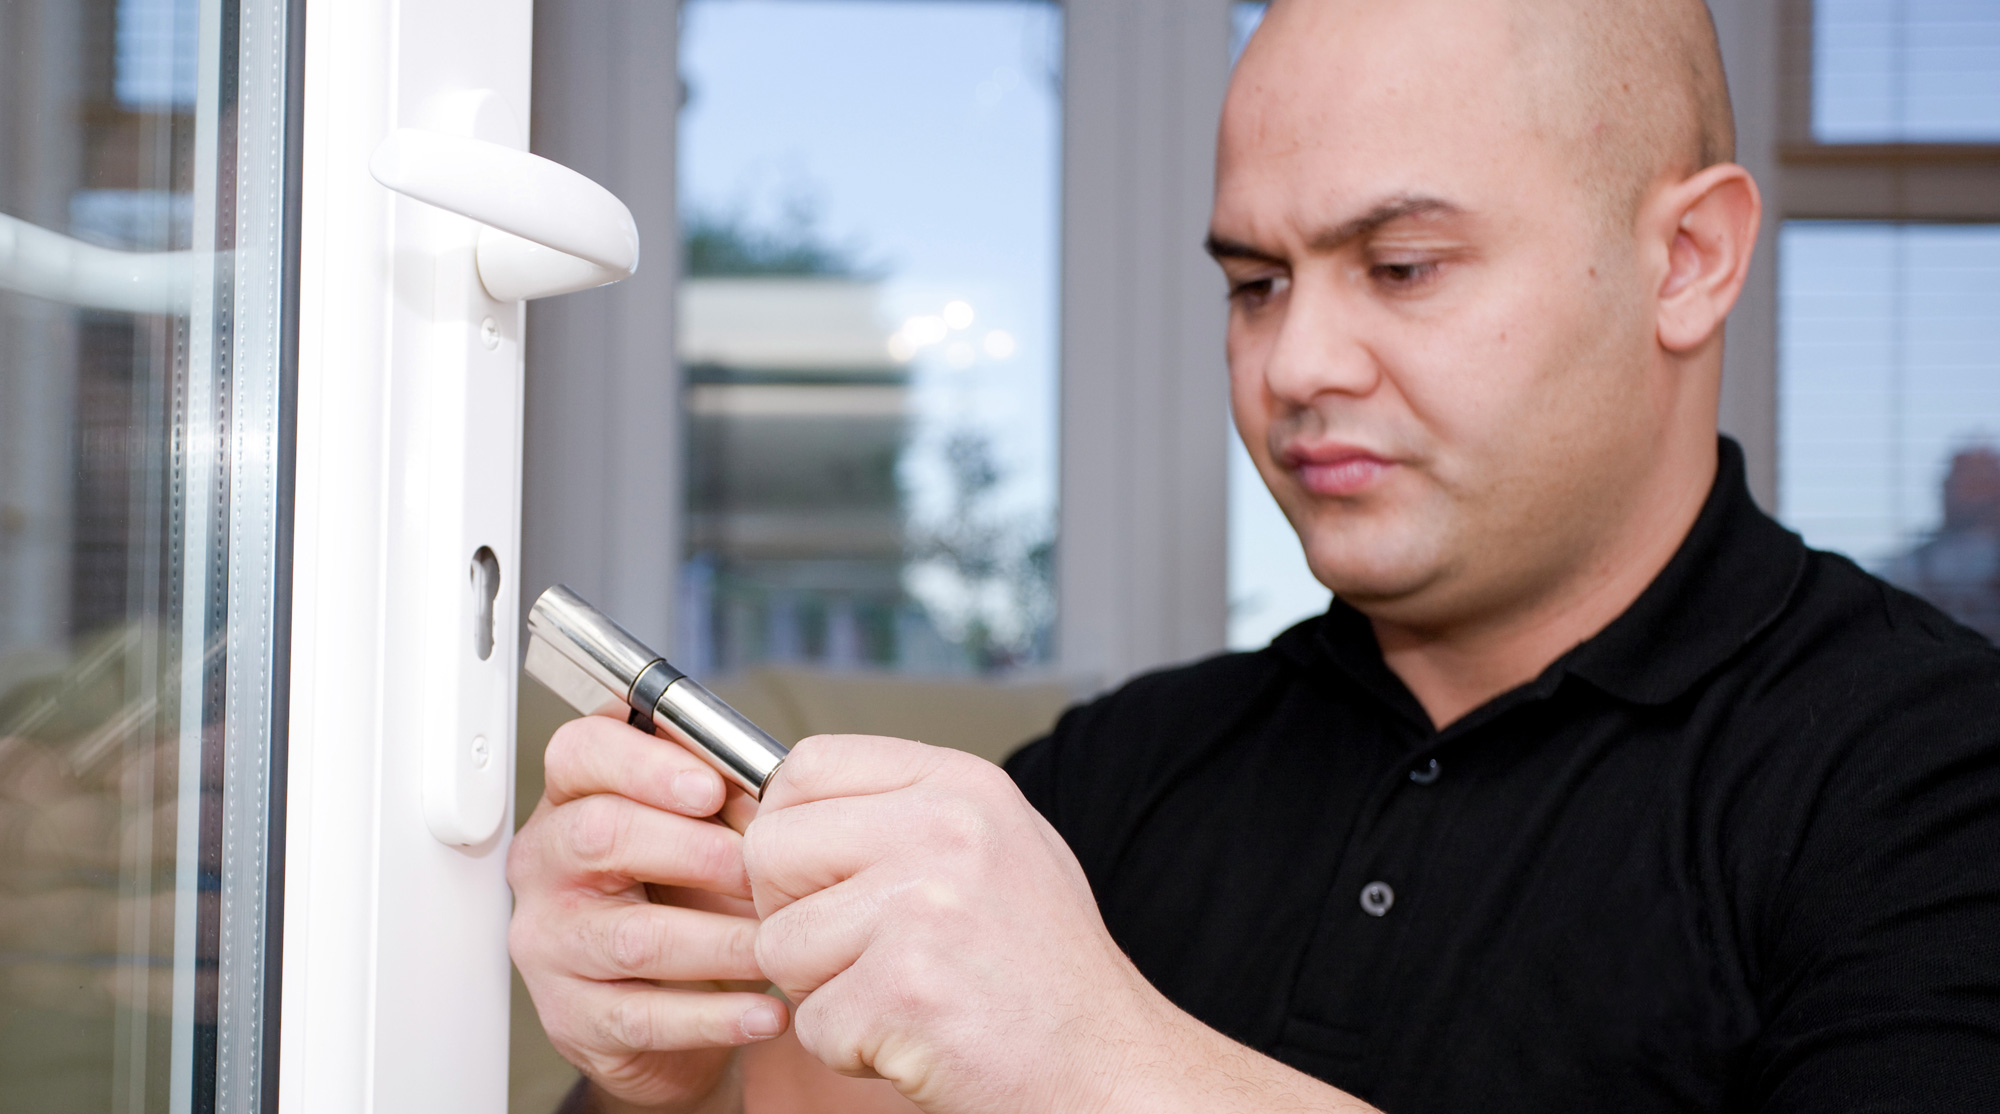 The role of locksmiths